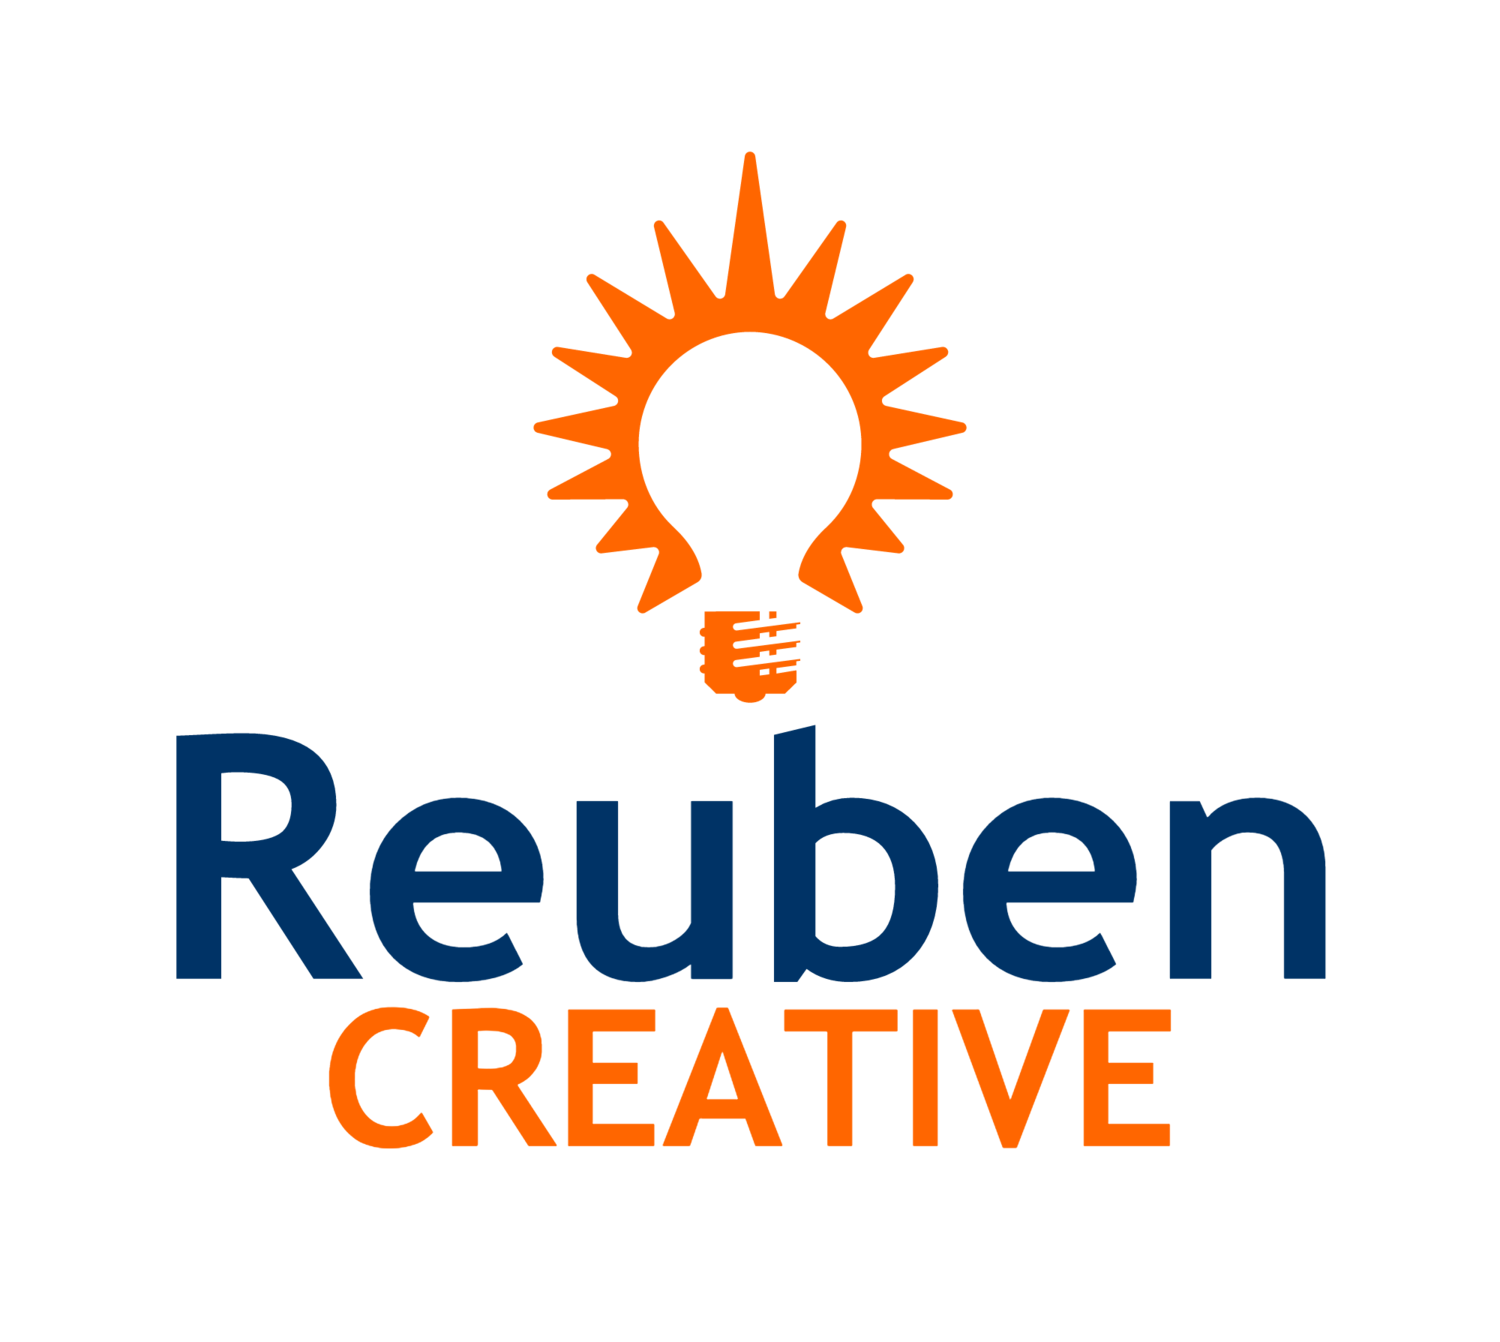 Reuben Creative, LLC